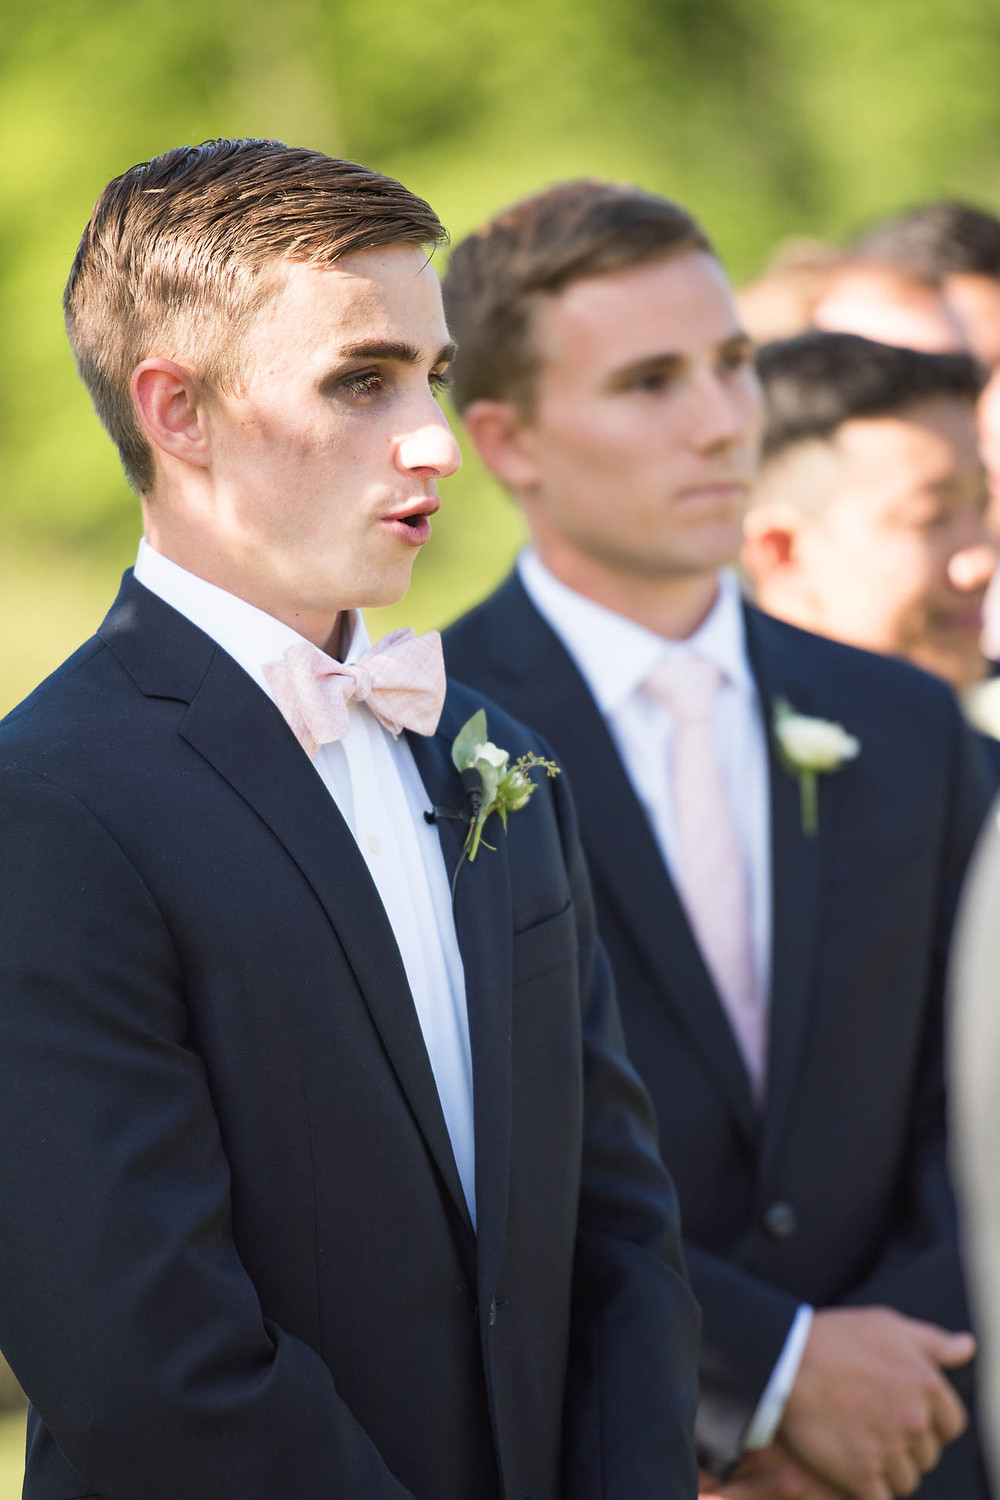 groom sees his bride for the first time on their wedding day